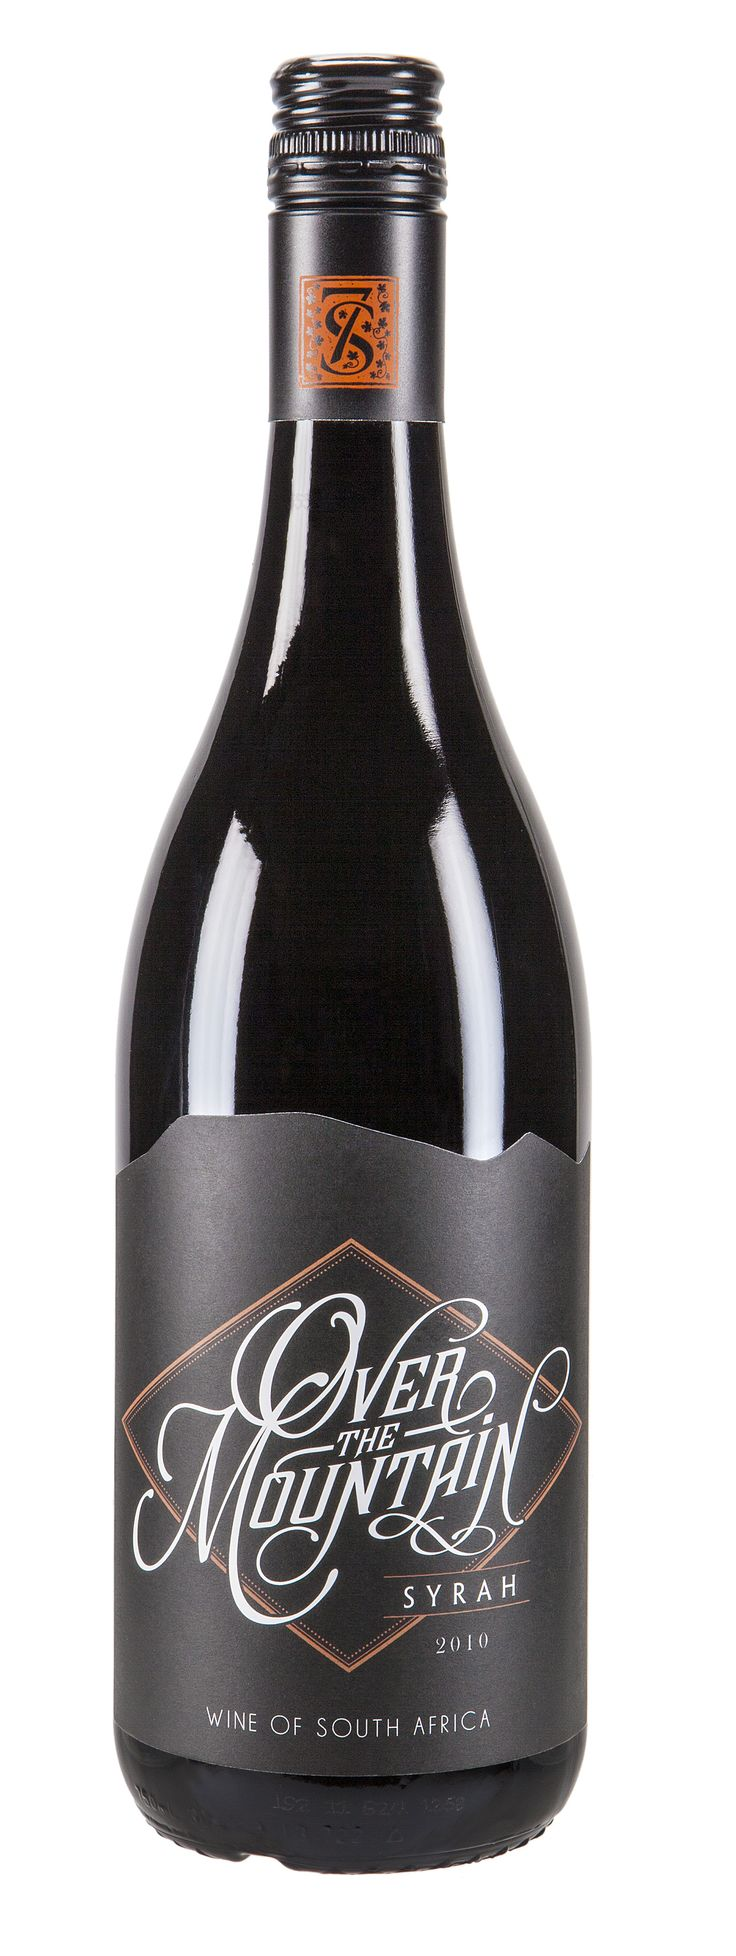 Over the Mountain Syrah 2010 - Recommended by WaPo